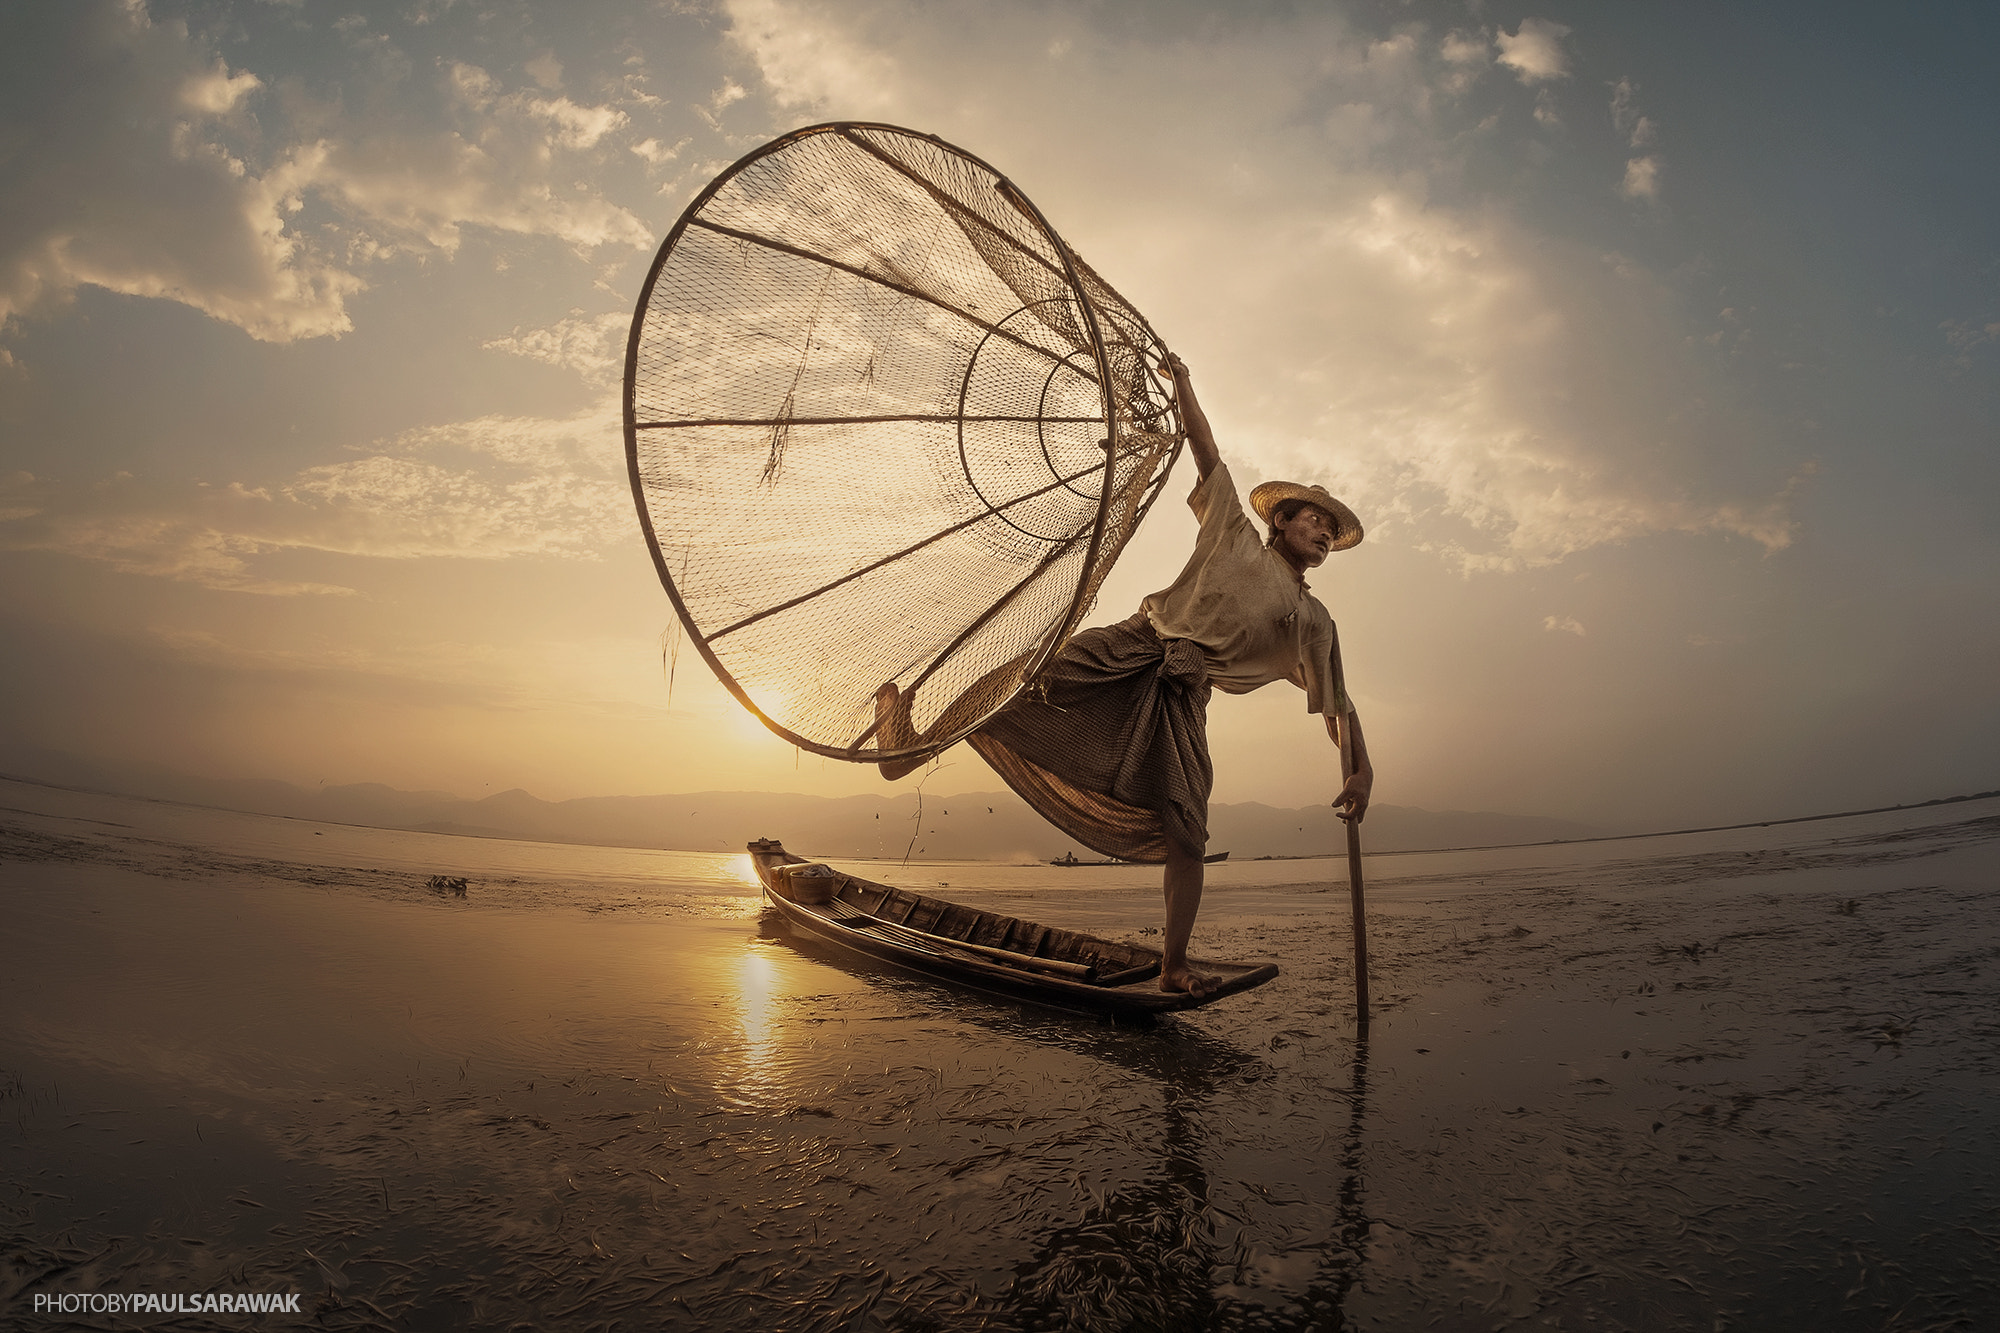 Photograph Inle lake by paul sarawak on 500px